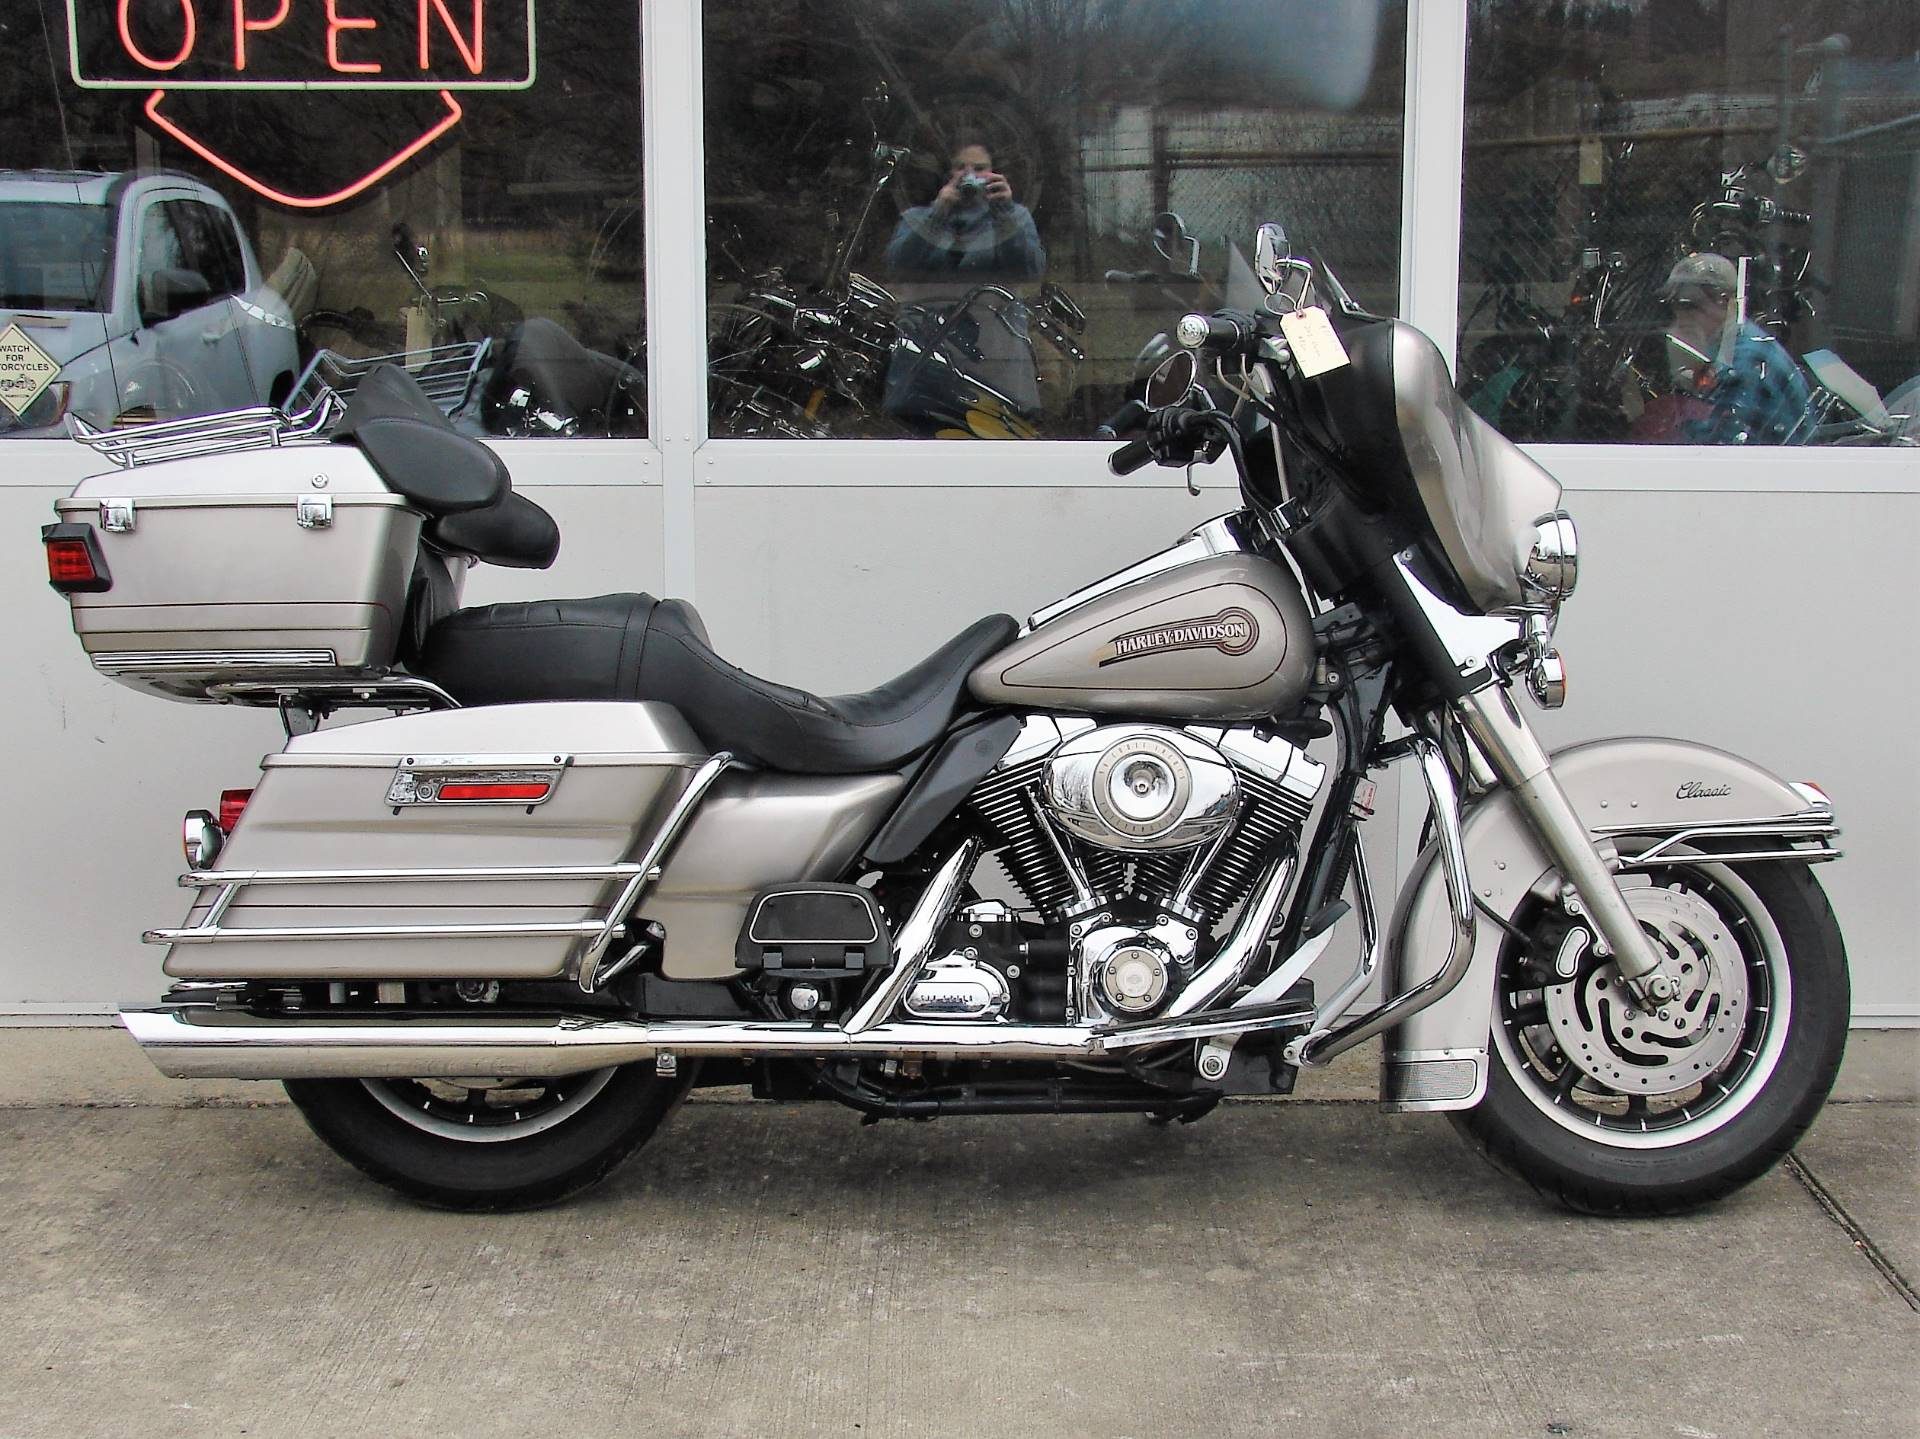 2007 Harley-Davidson Classic  (with 96 cubic inch Motor!) in Williamstown, New Jersey